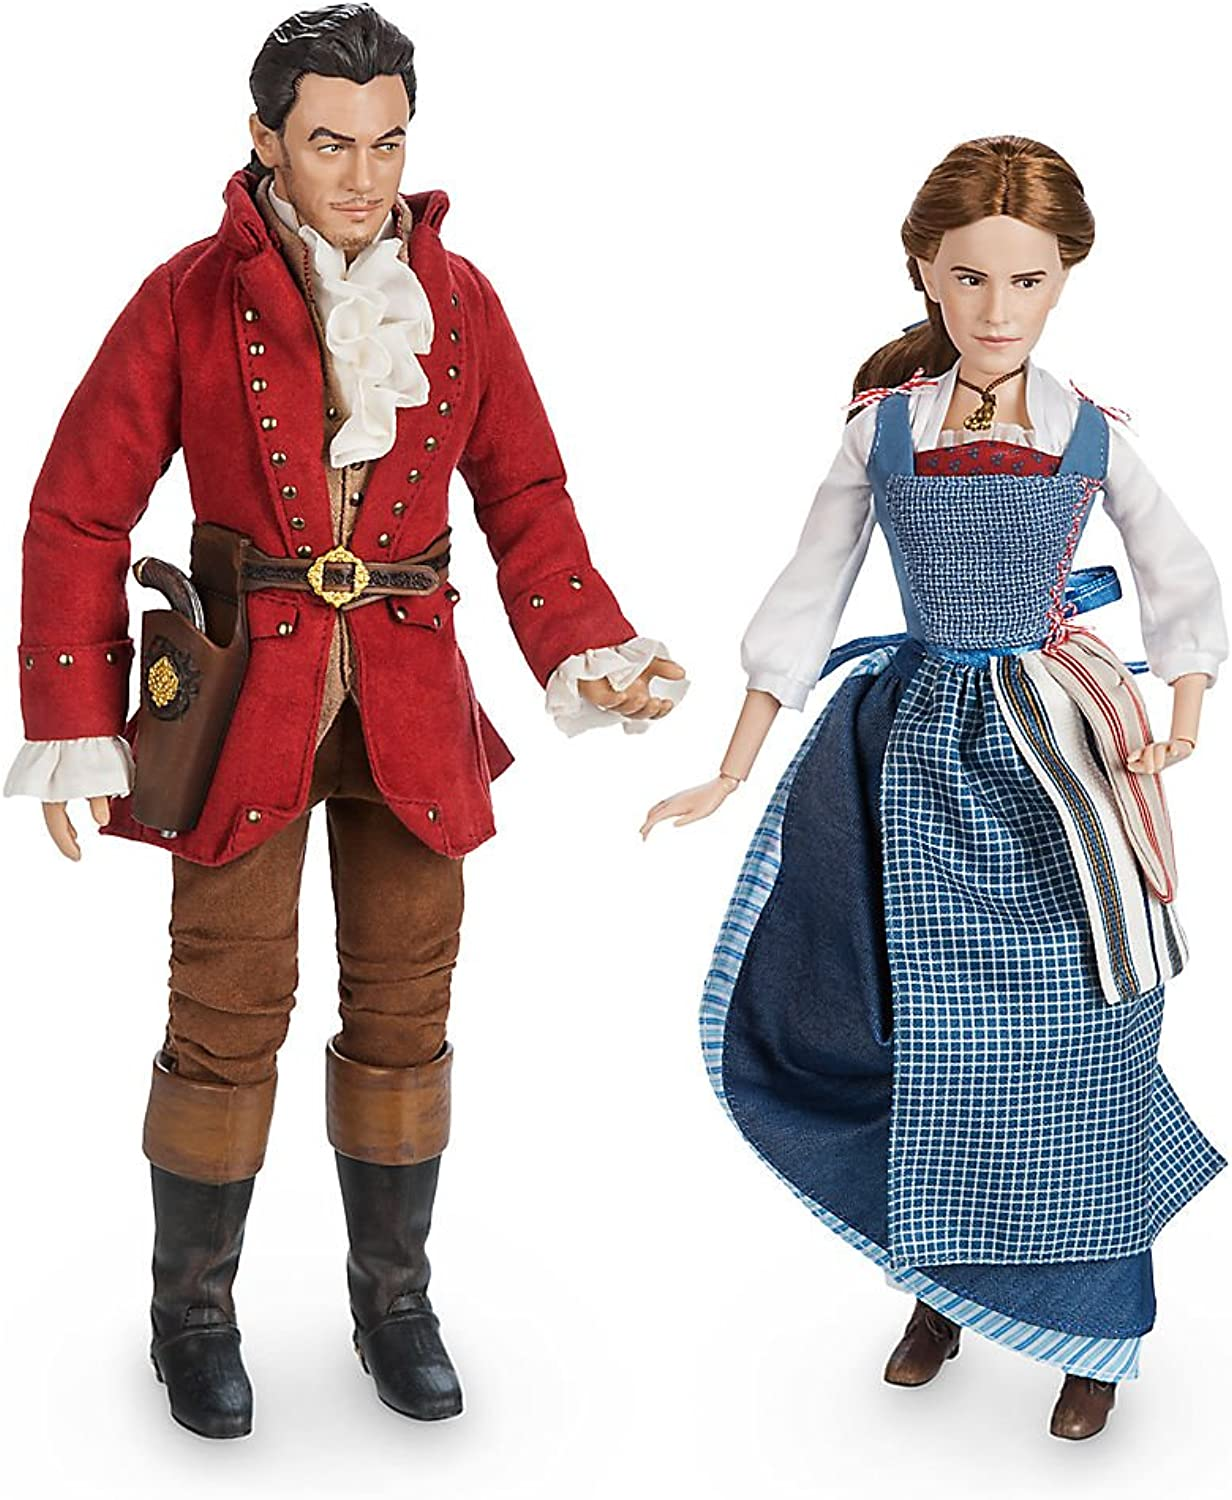 Disney Belle & Gaston Film Collection Doll Set  Beauty and the Beast  Live Action Film